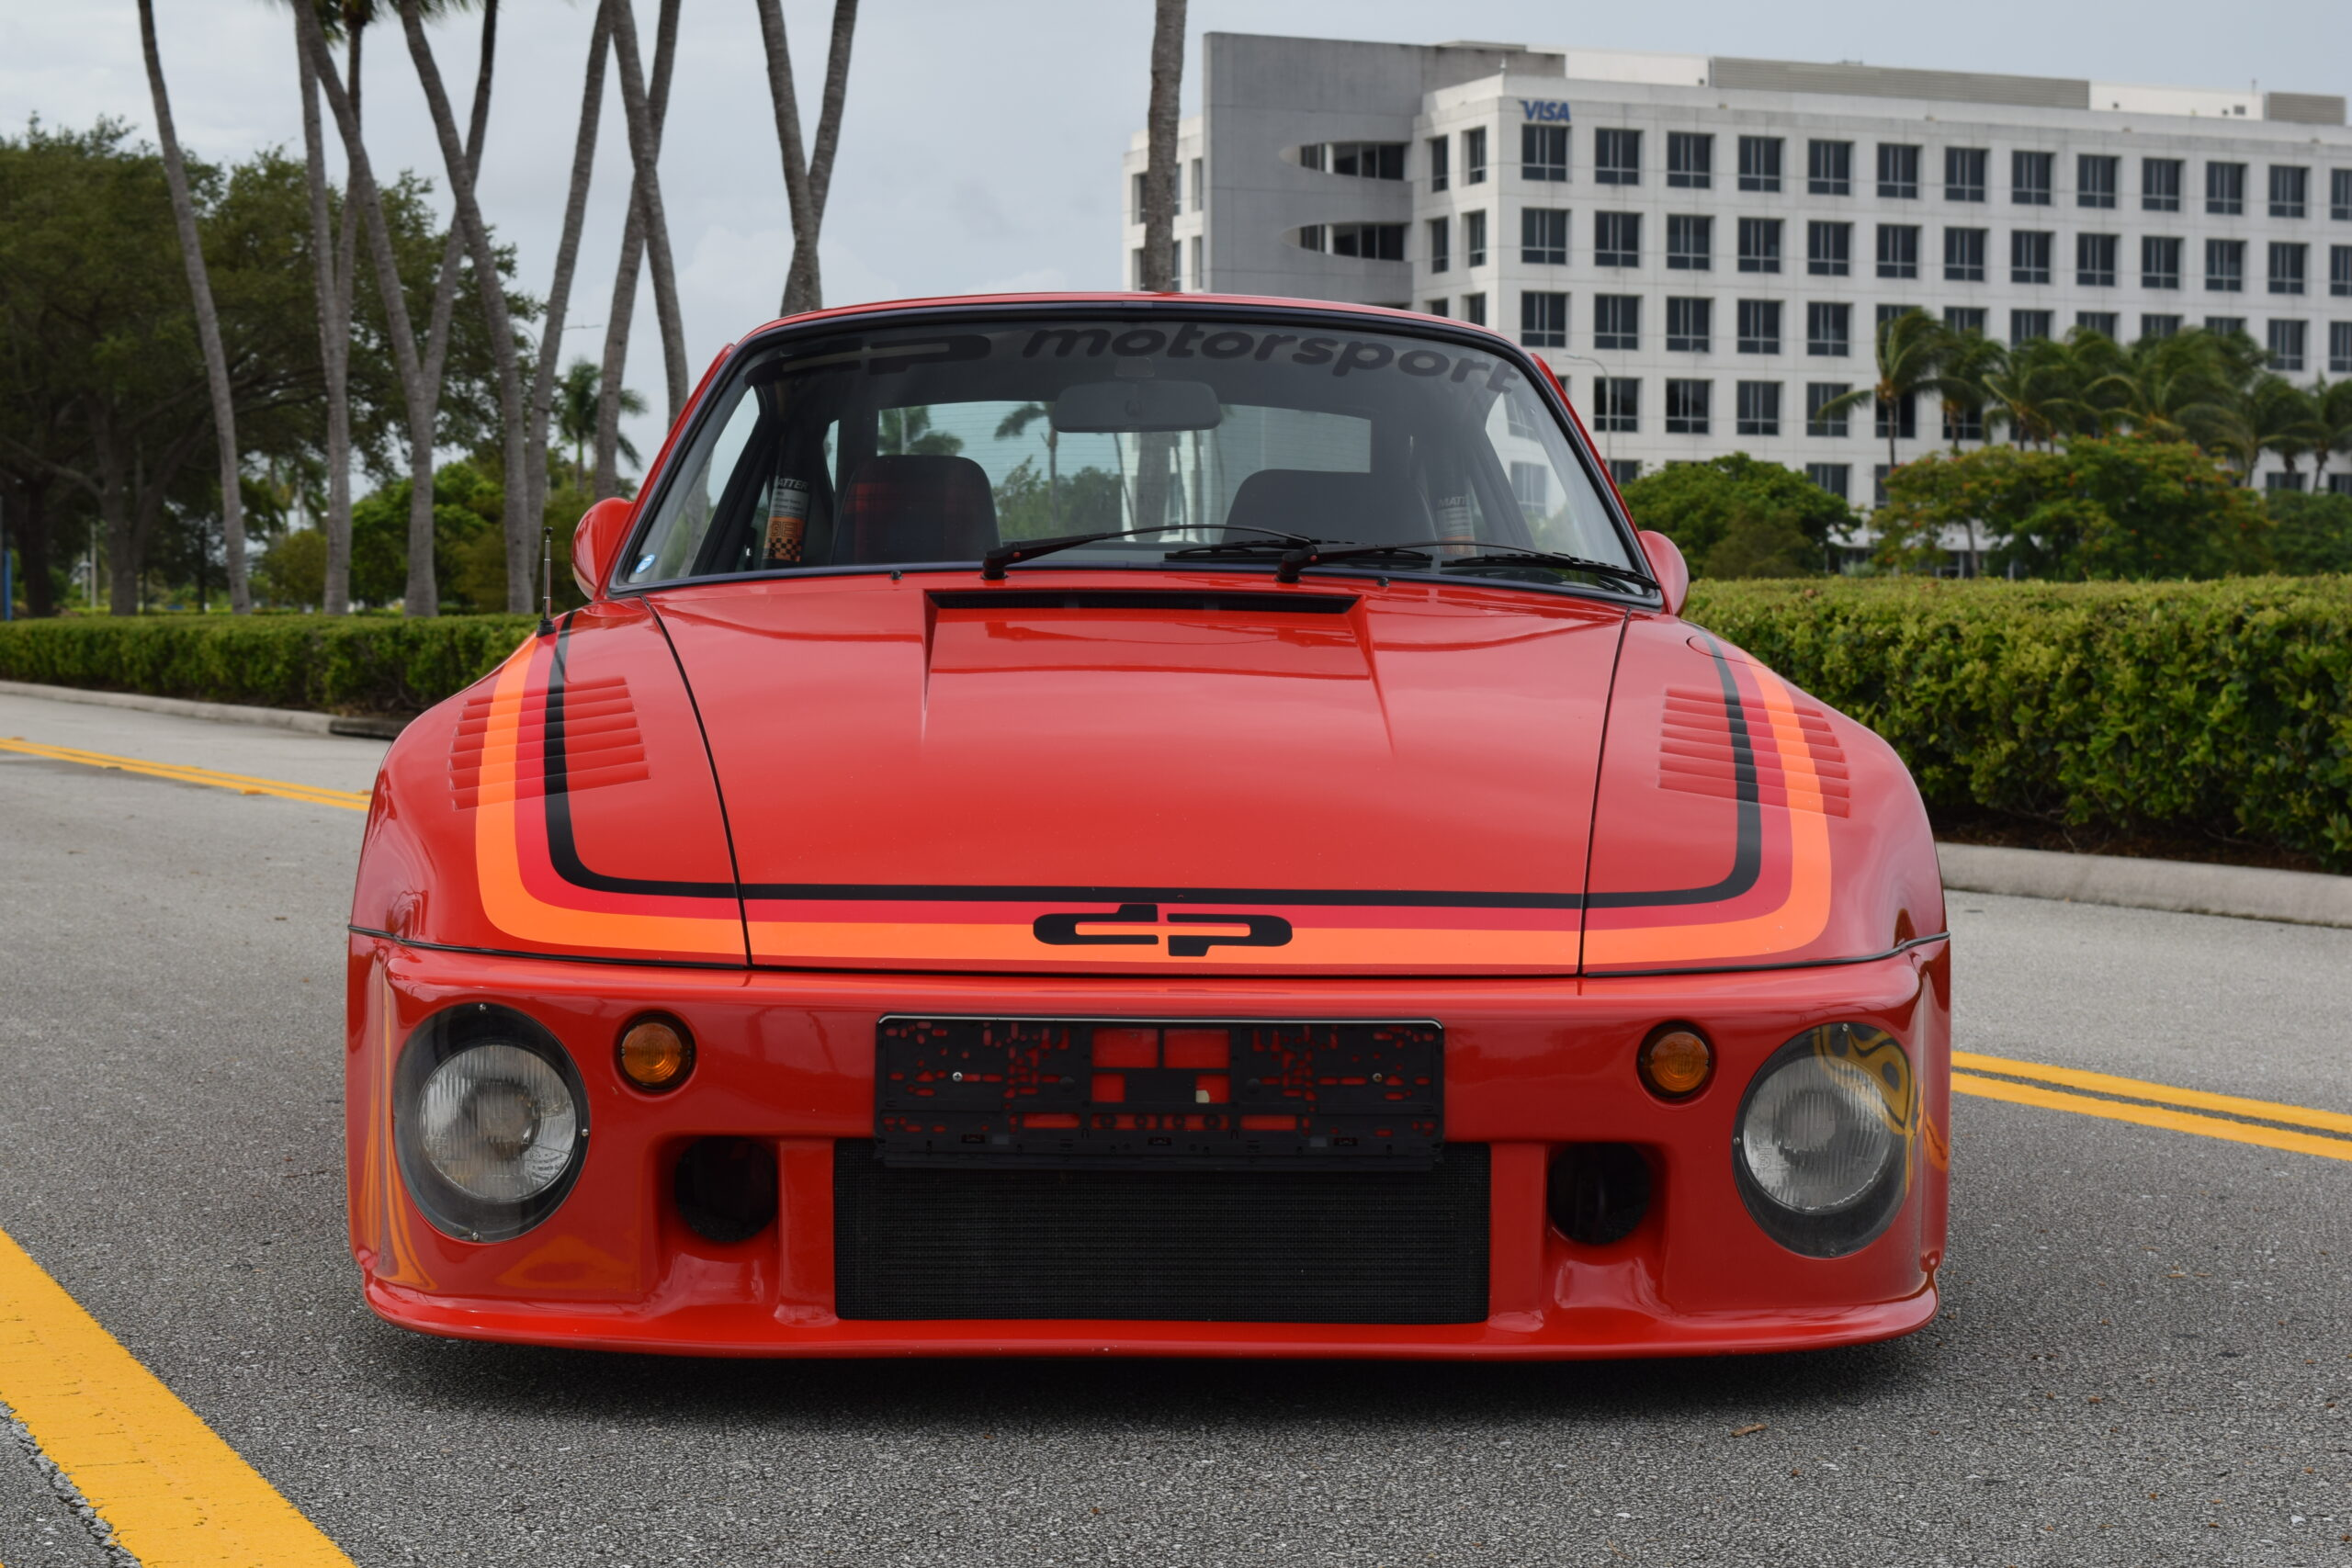 1979 very rare, REAL and desirable DP Motorsport 935 I – RUF CAR Straßen